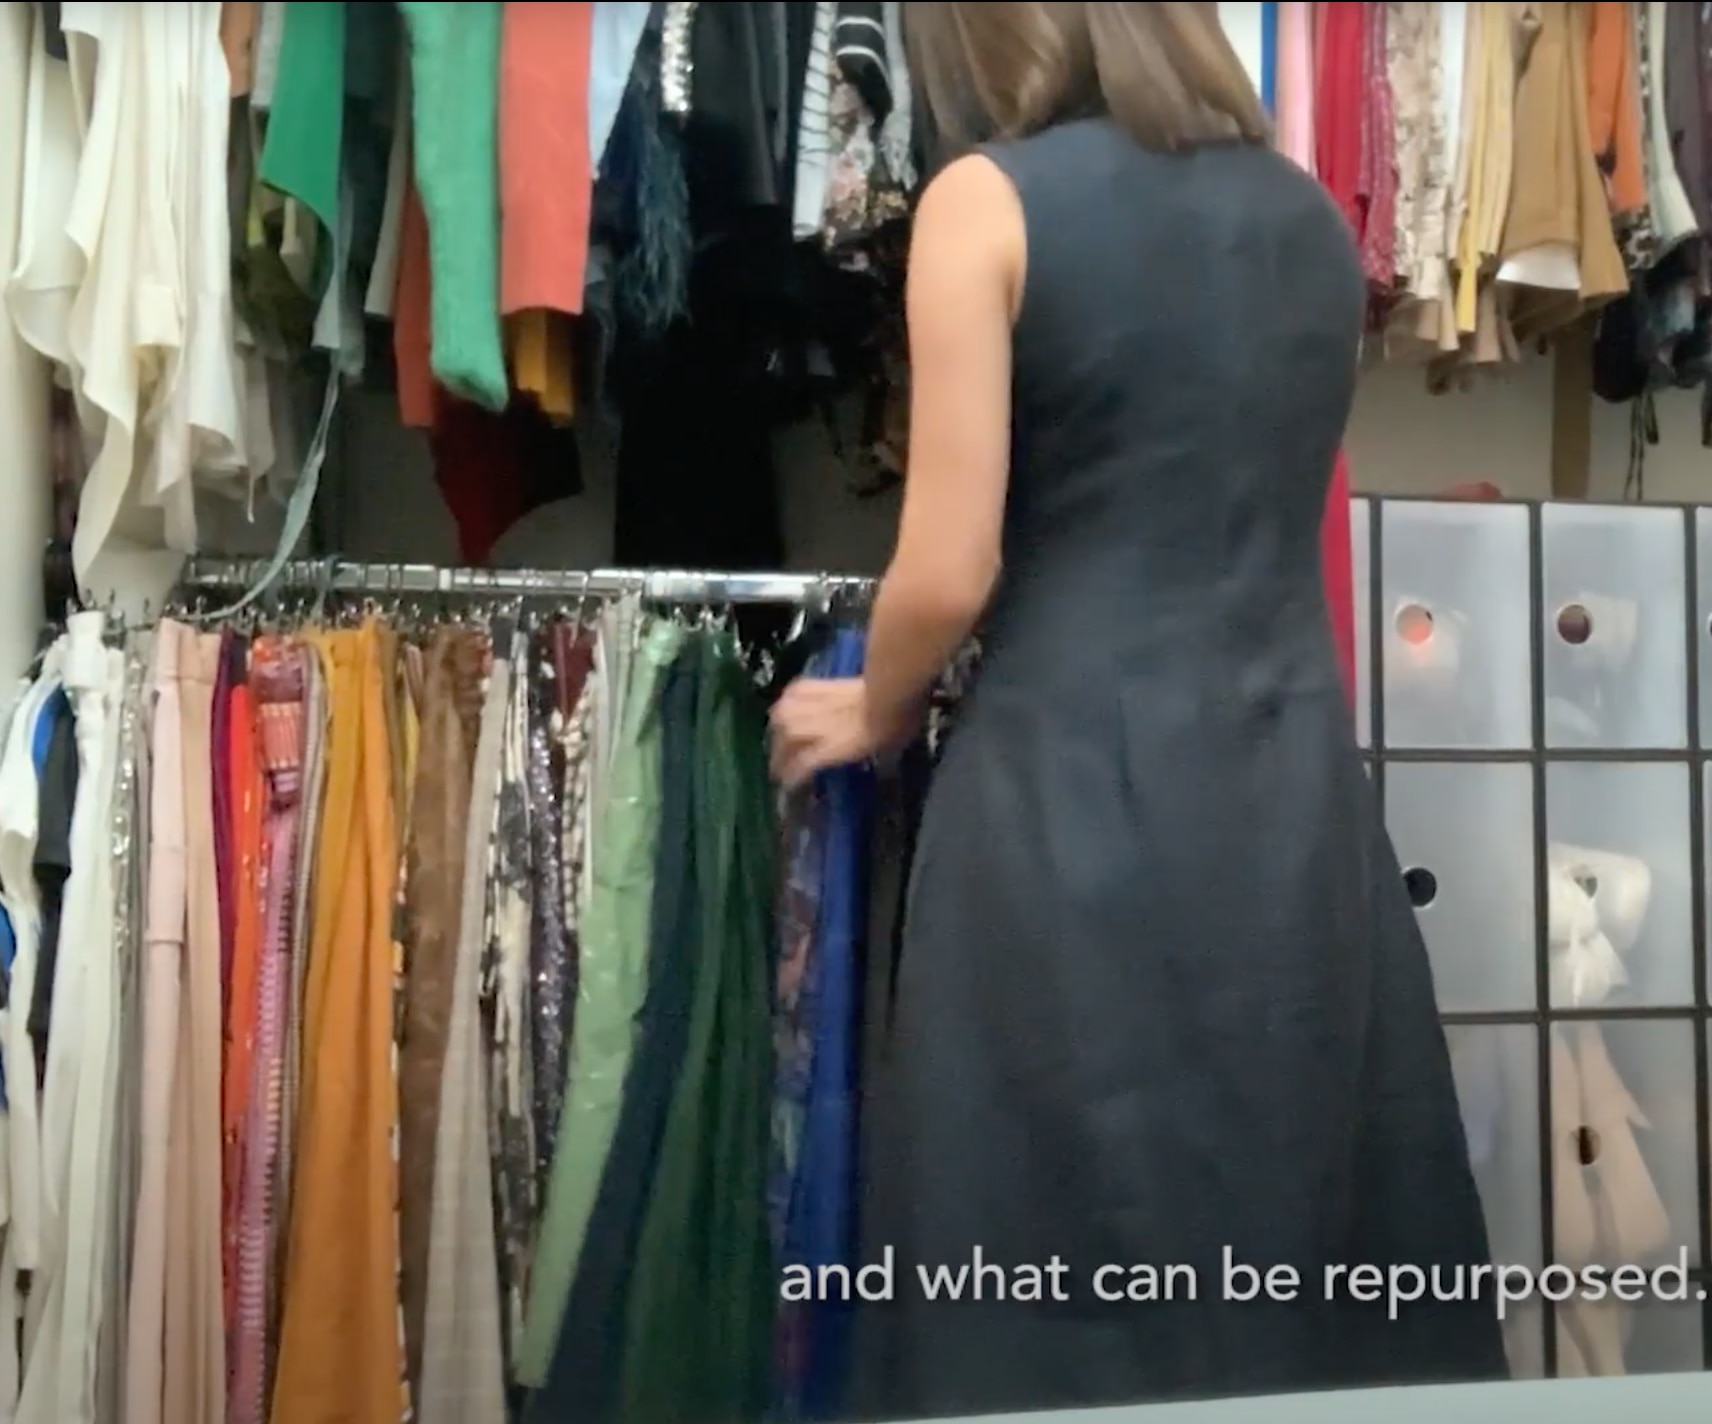 [WATCH] Do Yourself A Favor And Finally Organize That Closet Now, Here's How to Start